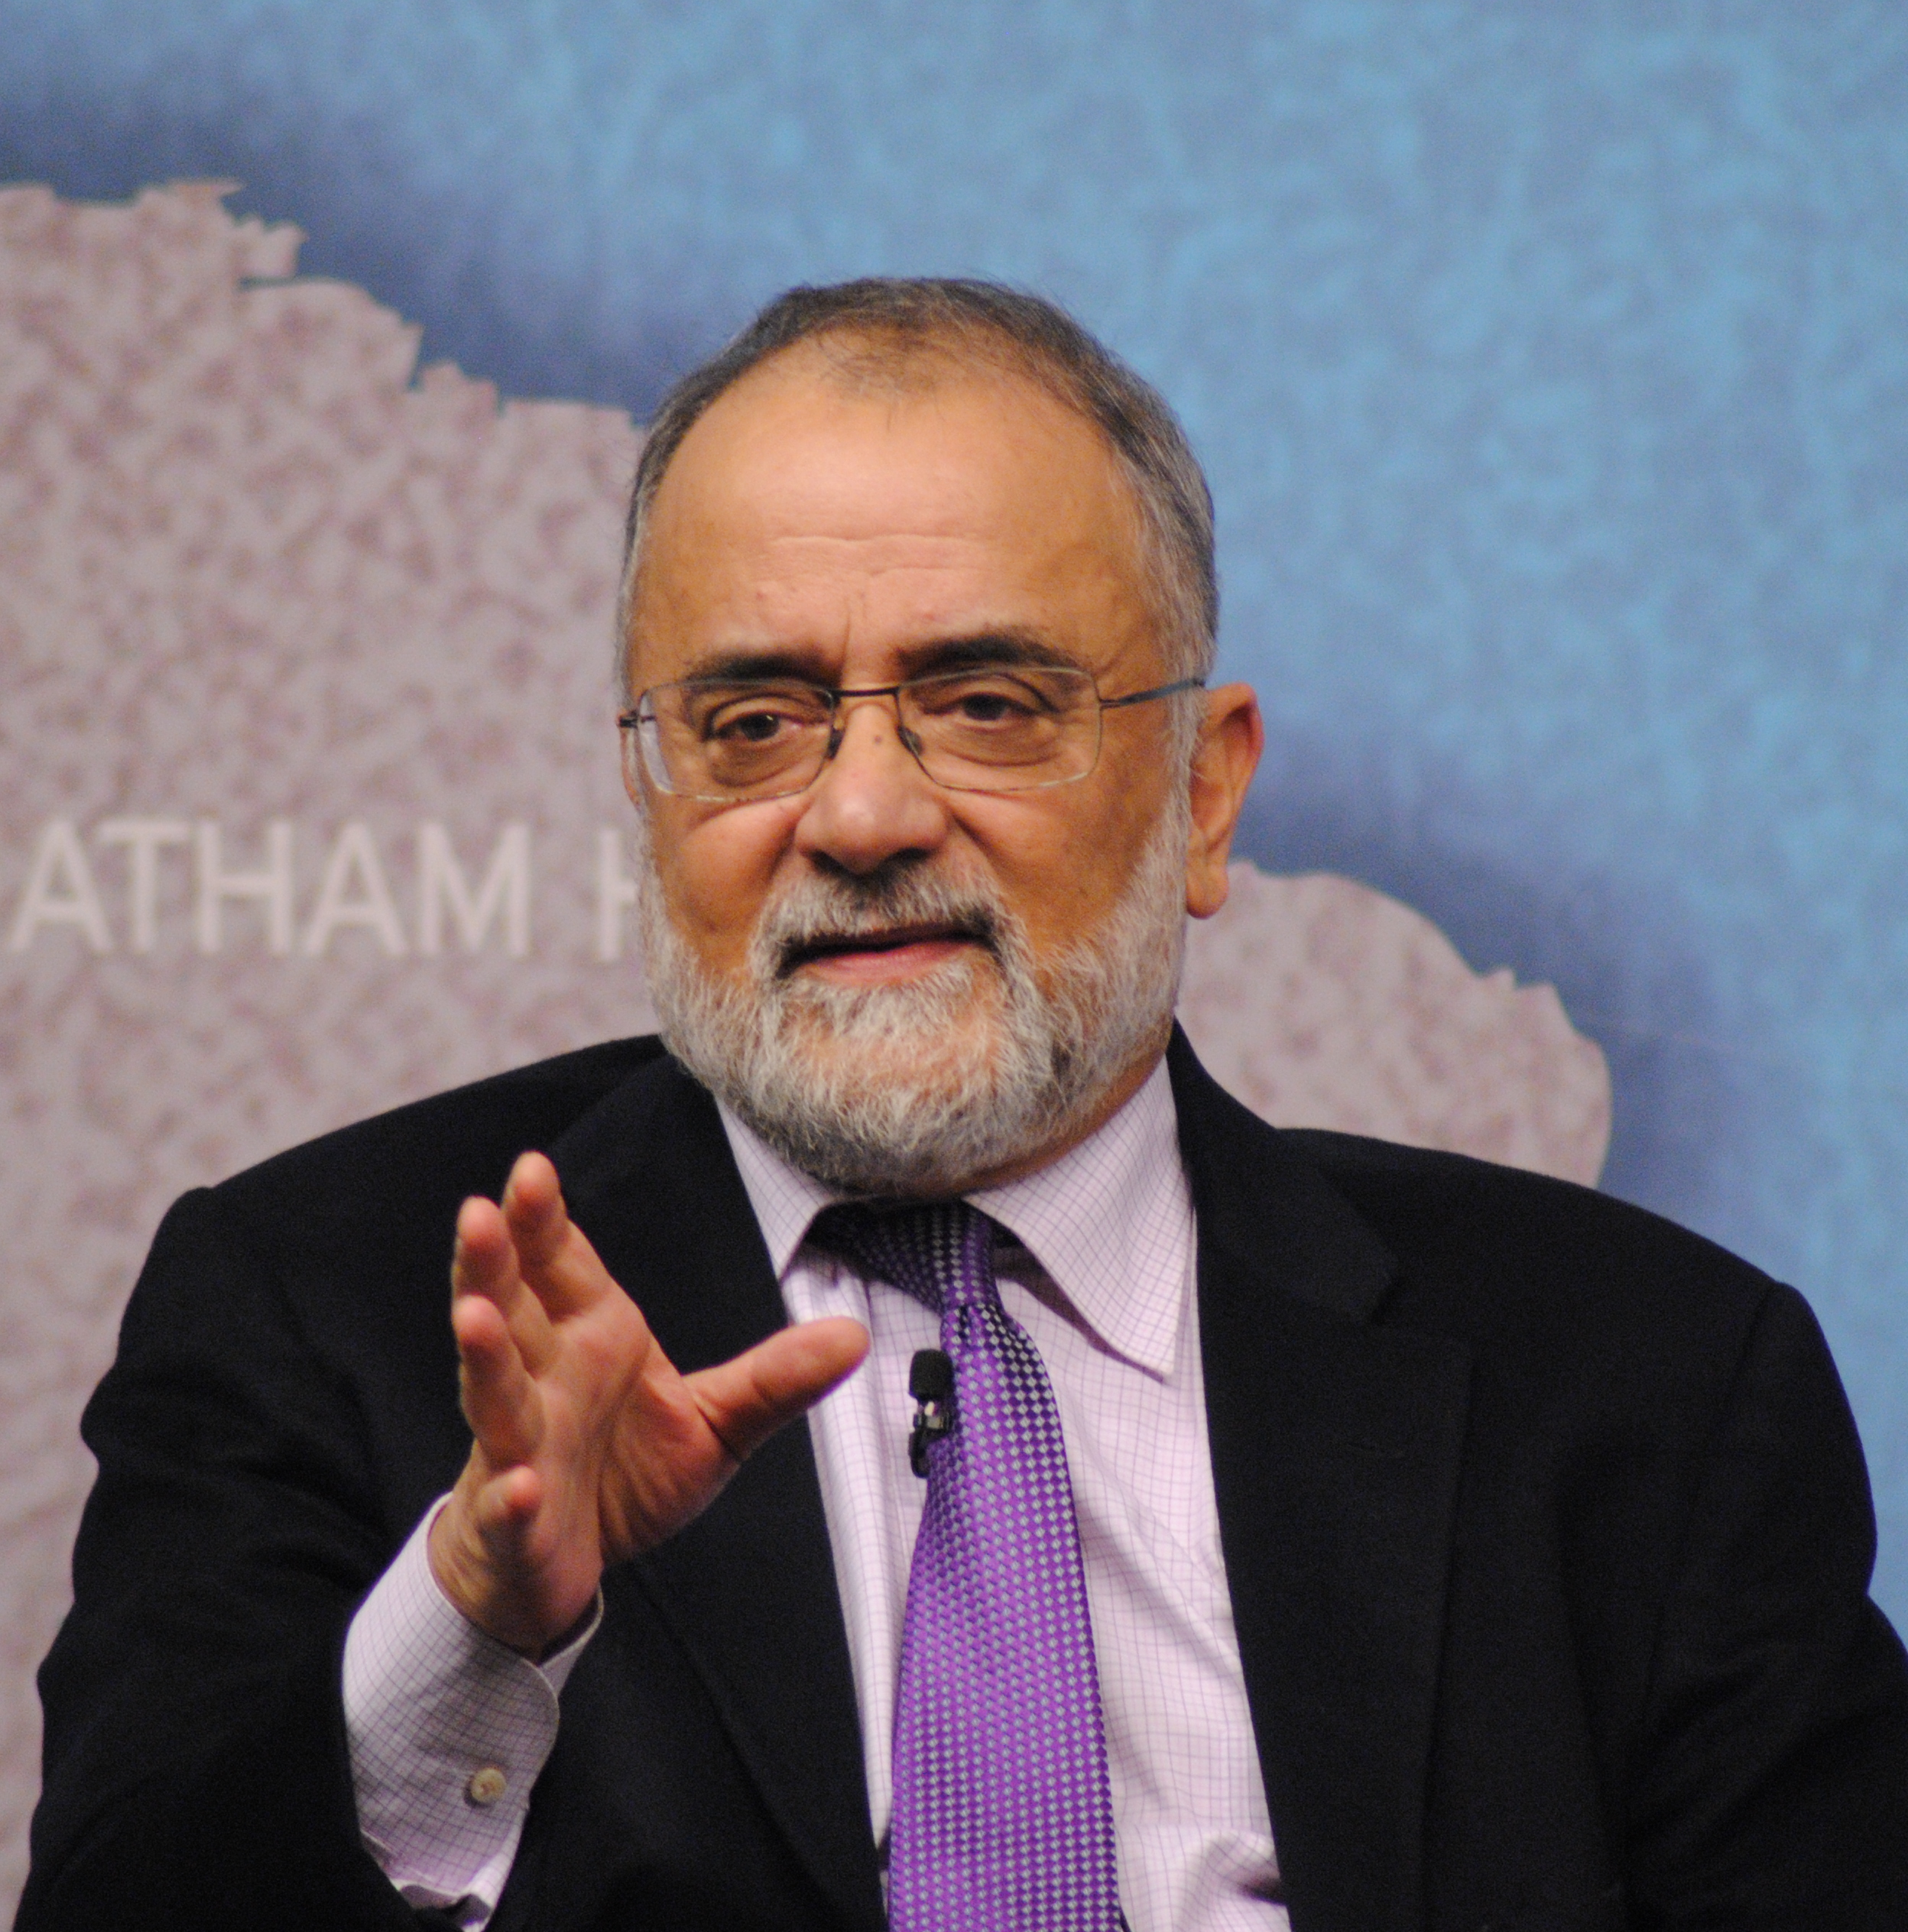 Ahmed Rashid speaking at a [[Chatham House]] event in January 2014